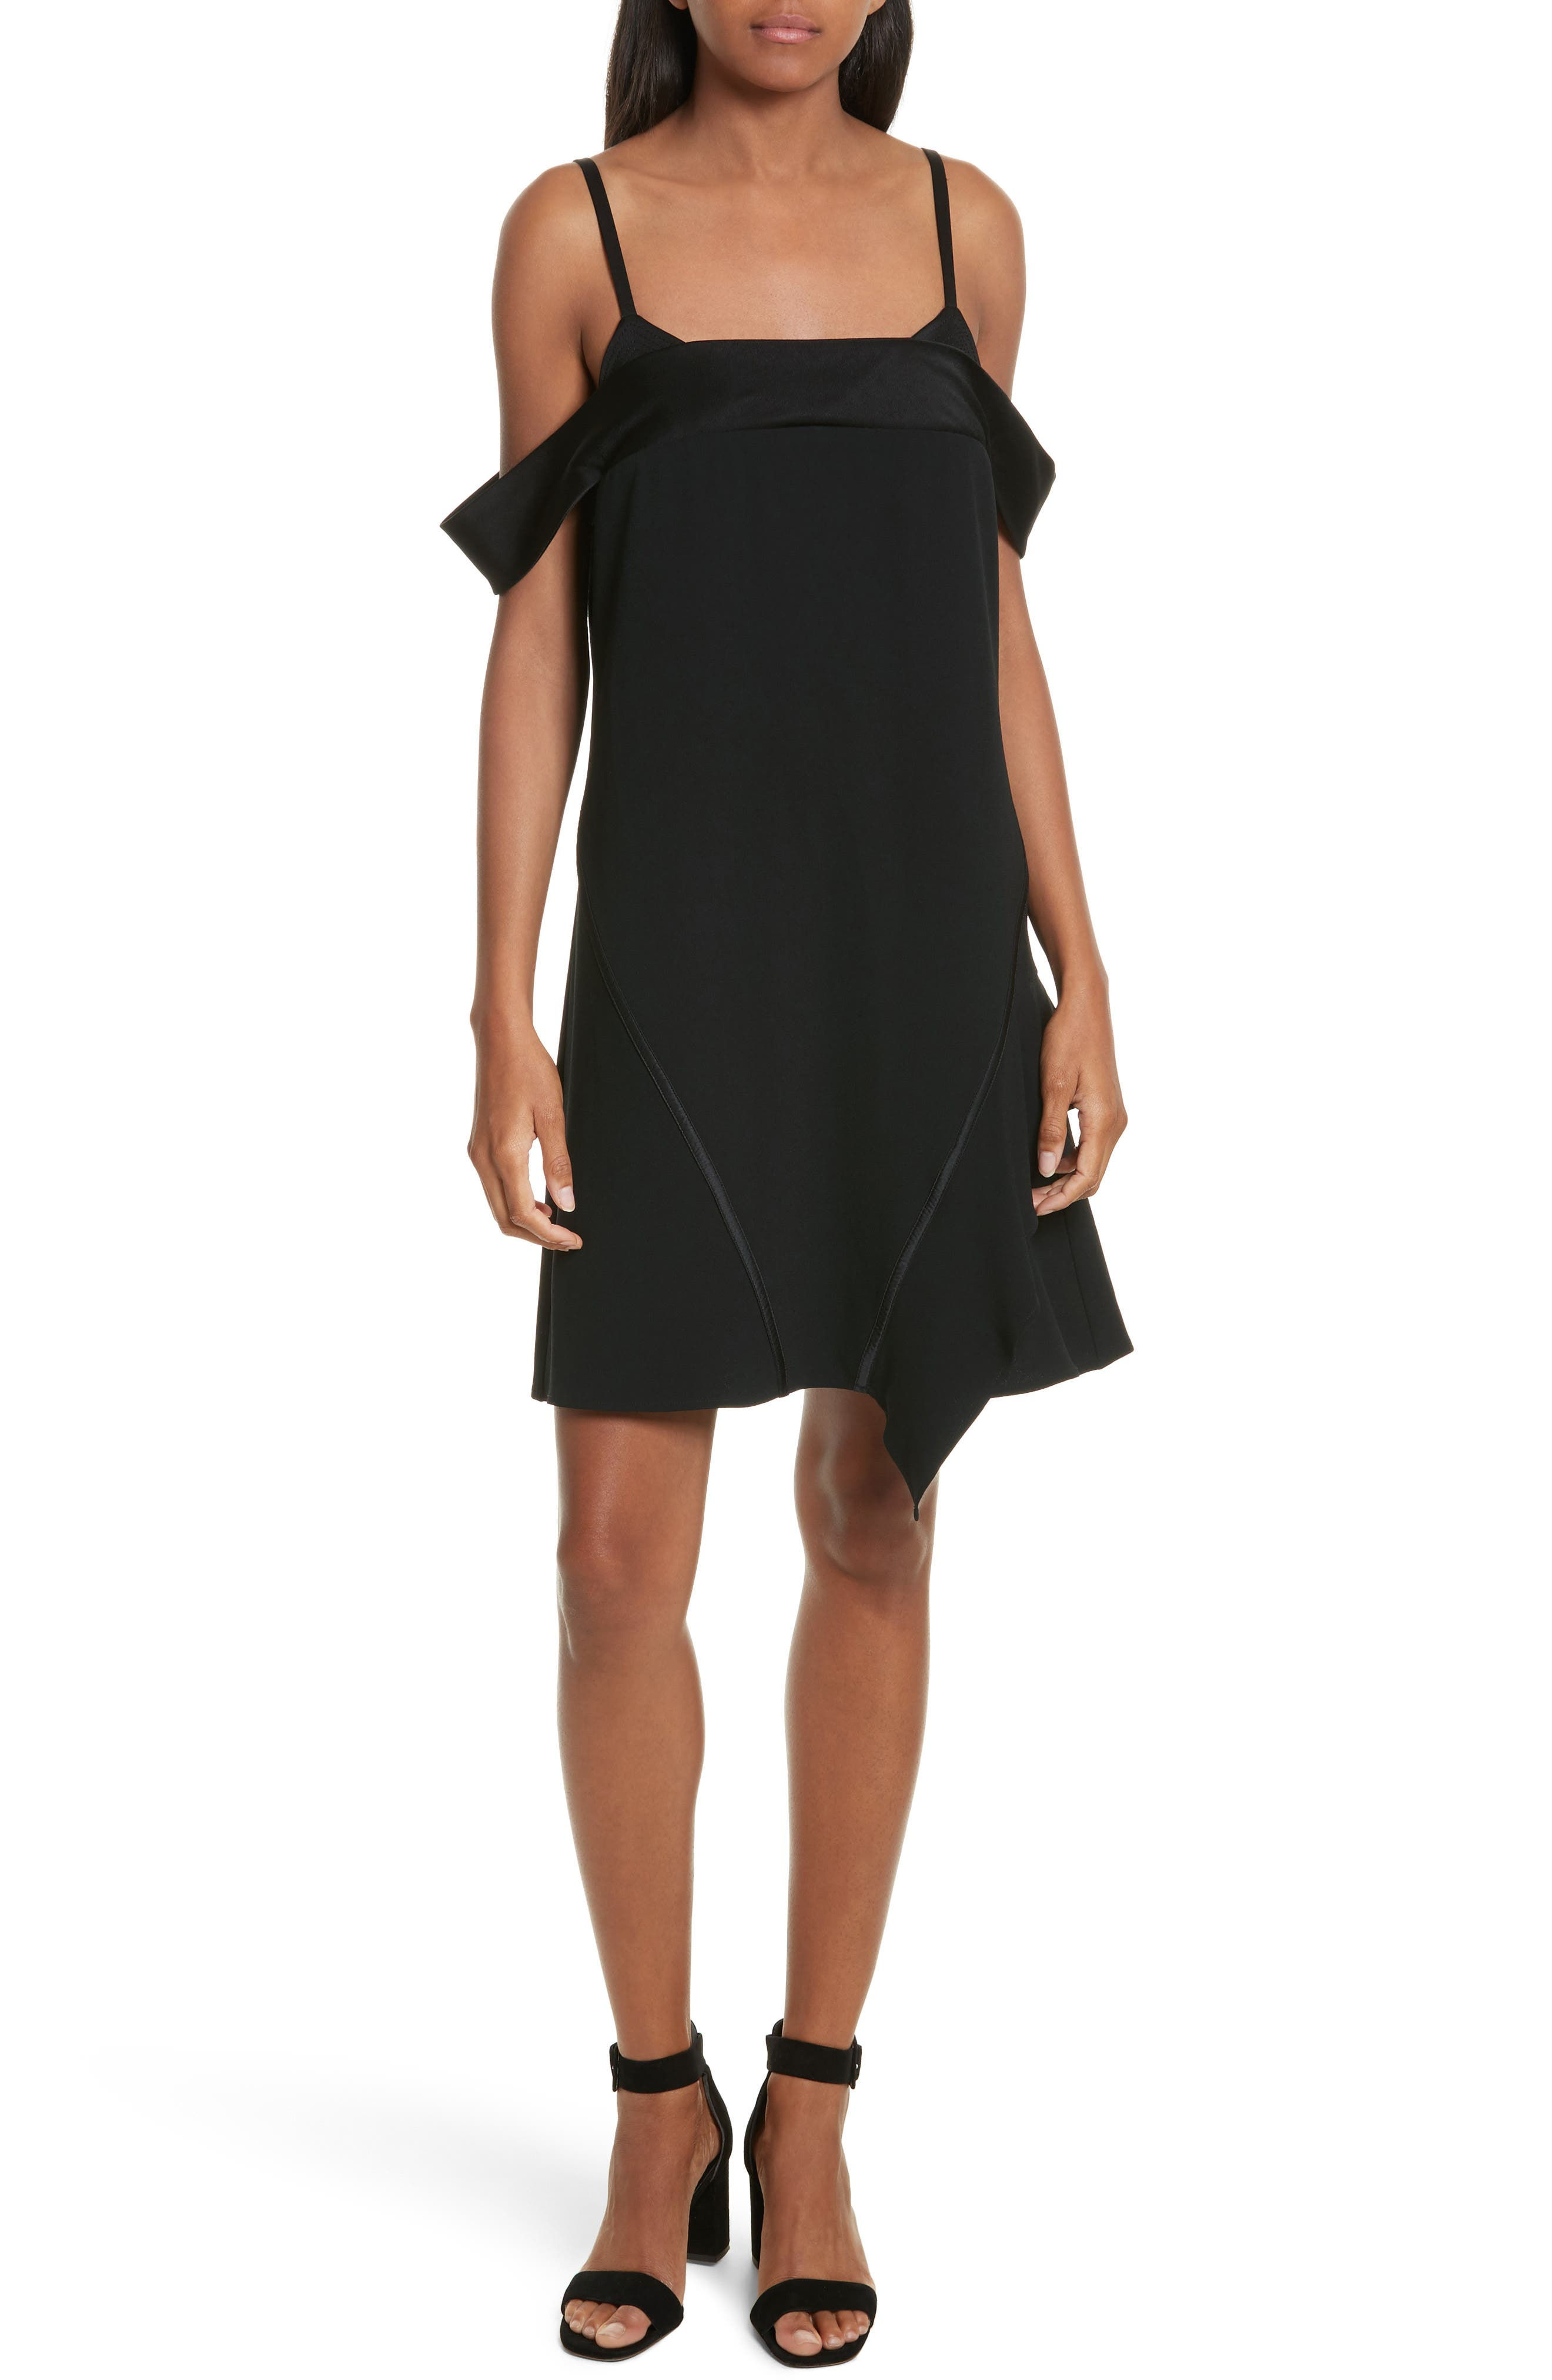 GREY Jason Wu Satin Back Crepe Off the Shoulder Dress